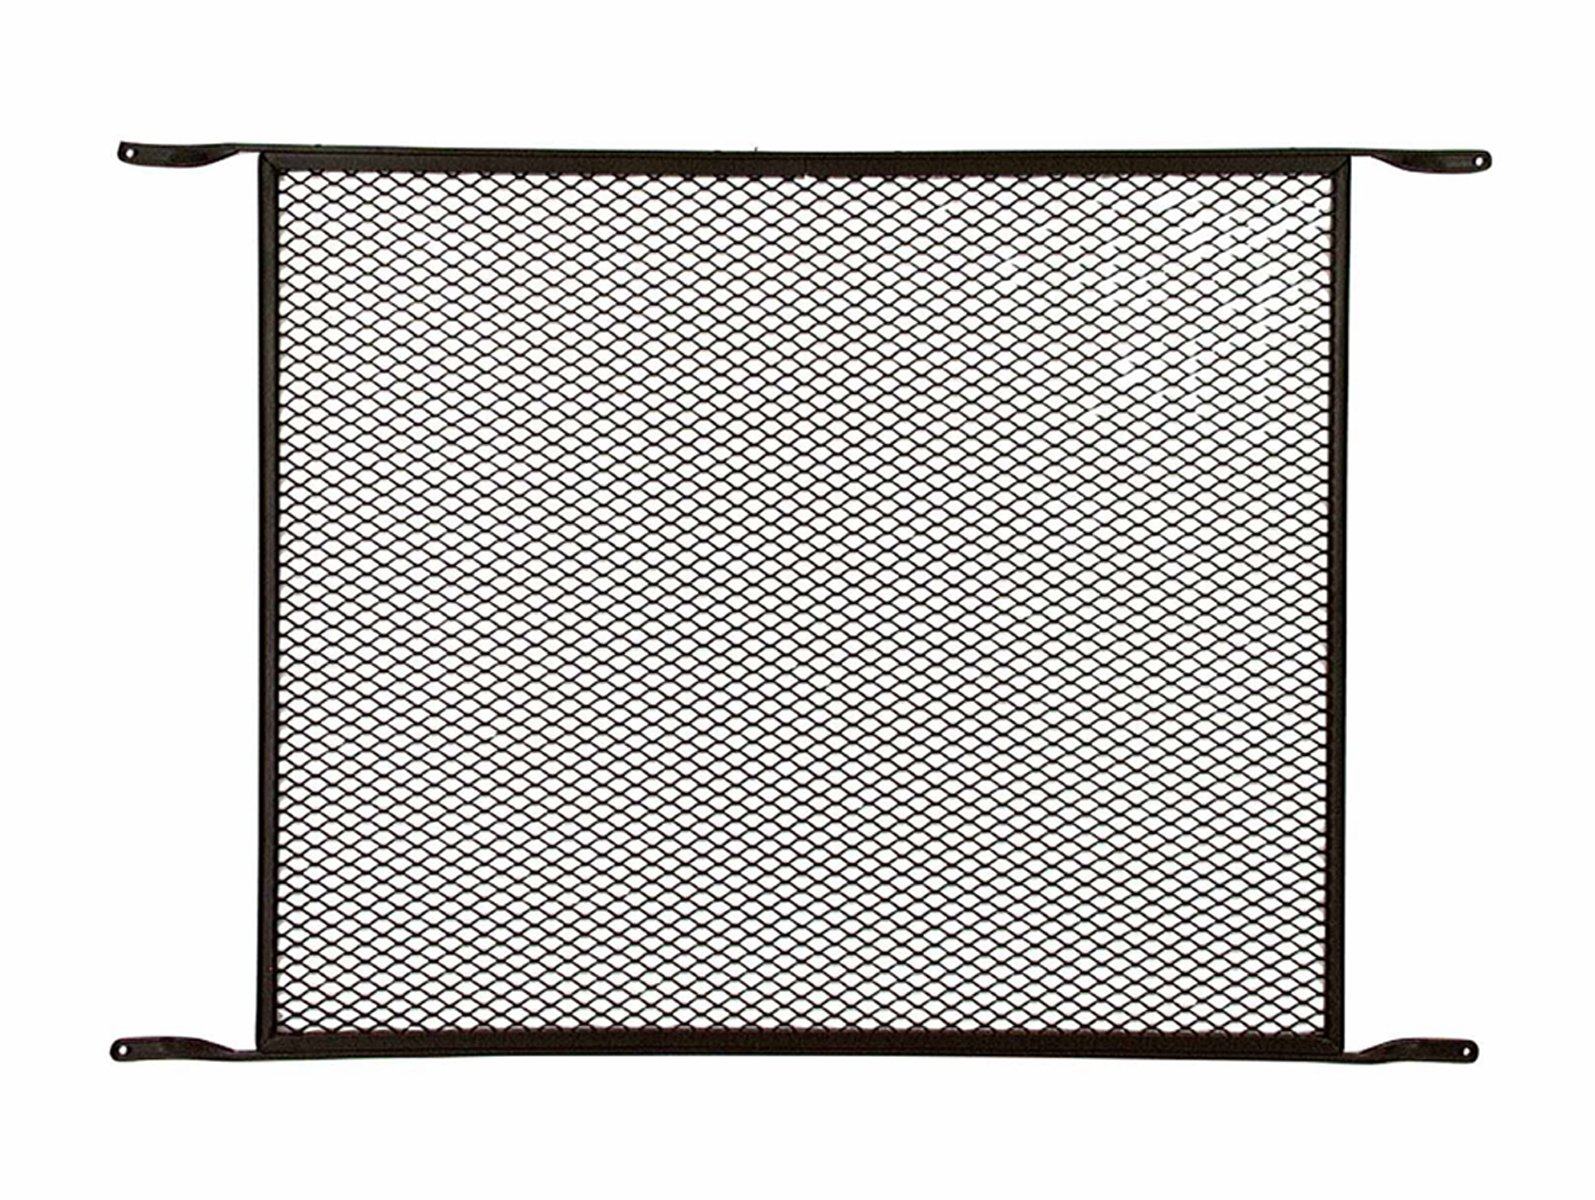 M-D Building Products 33381 M-D Door Grill, 36 in H X 19 in W, Aluminum, Bronze by M-D Building Products